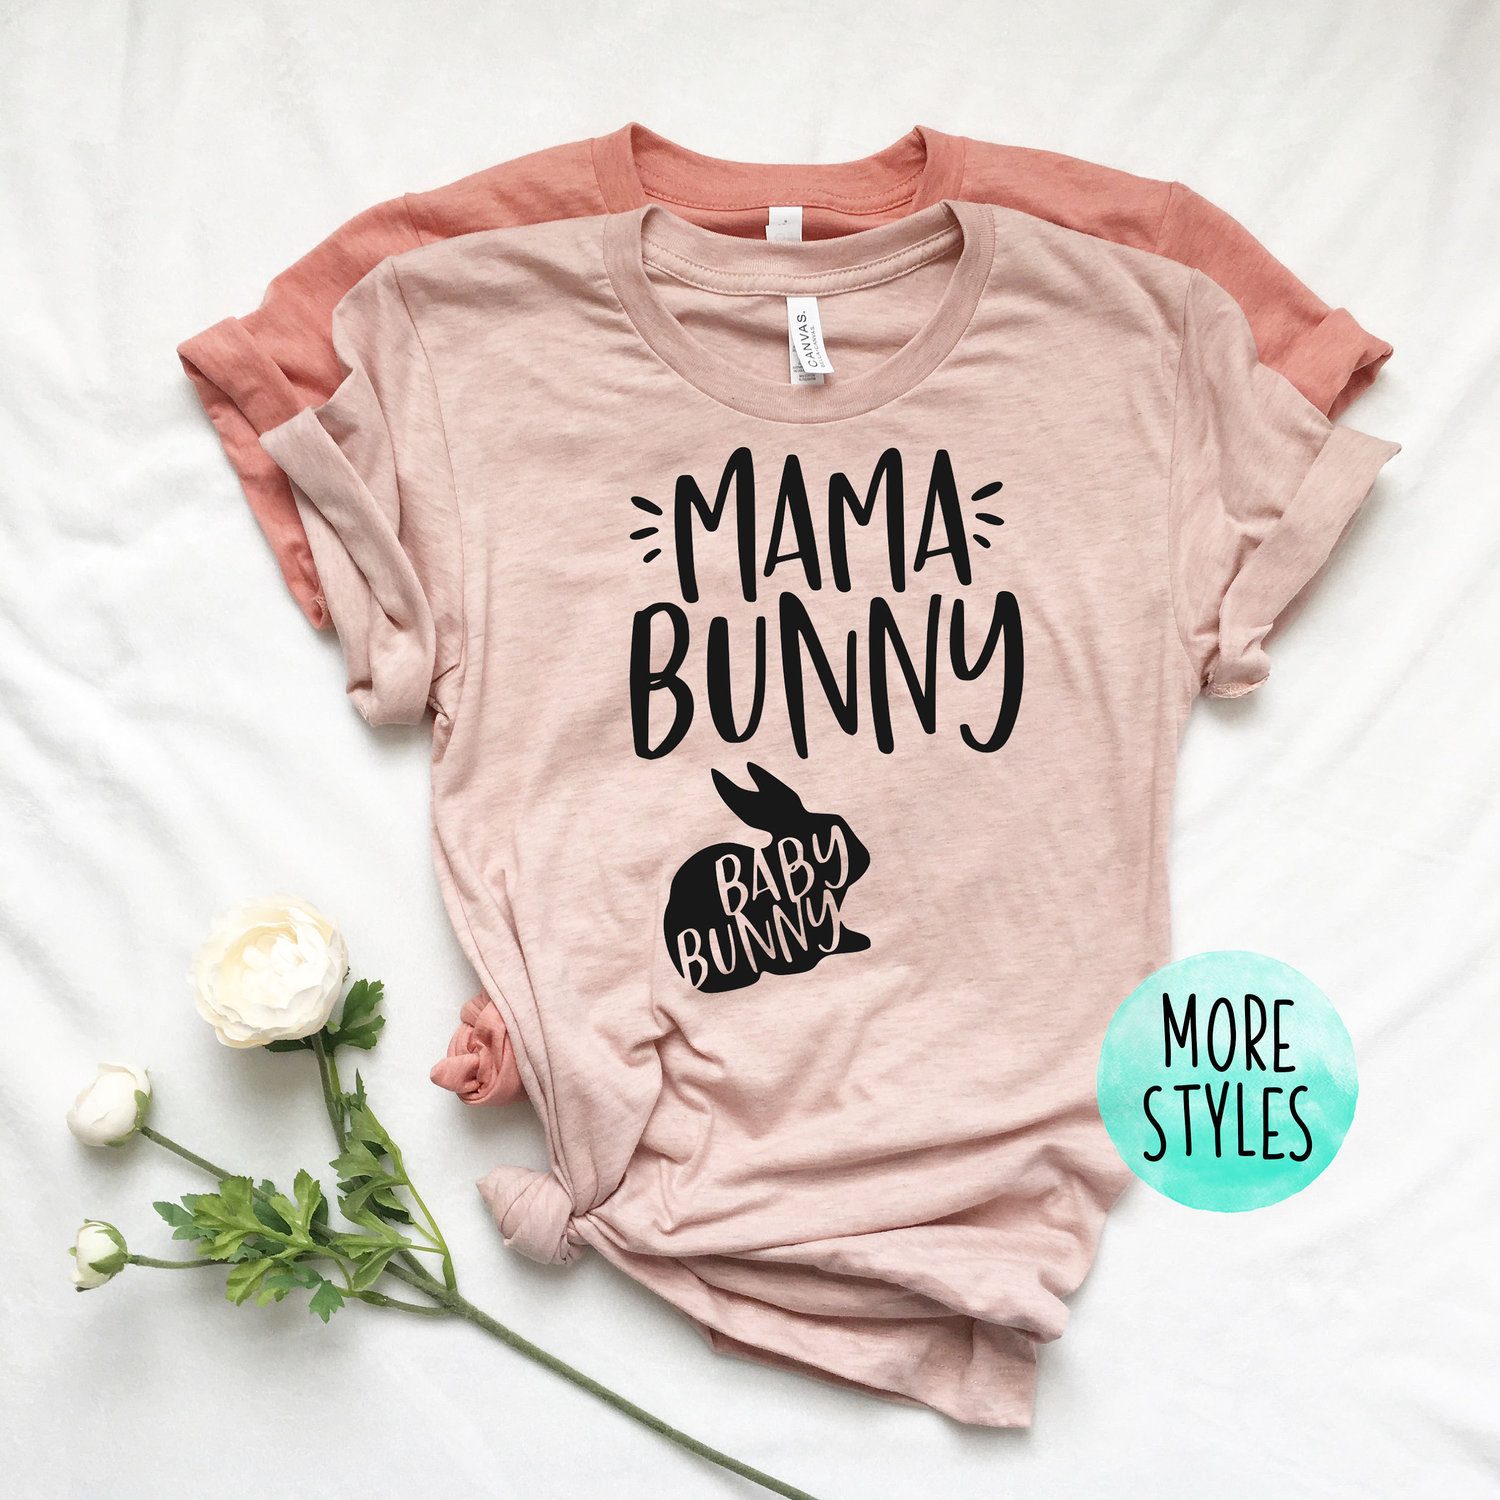 Mama Bunny Funny Easter T-Shirt Women Pregnancy Shirt Mom To Be Pregnancy Shirts Maternity Announcement Tee Shirt